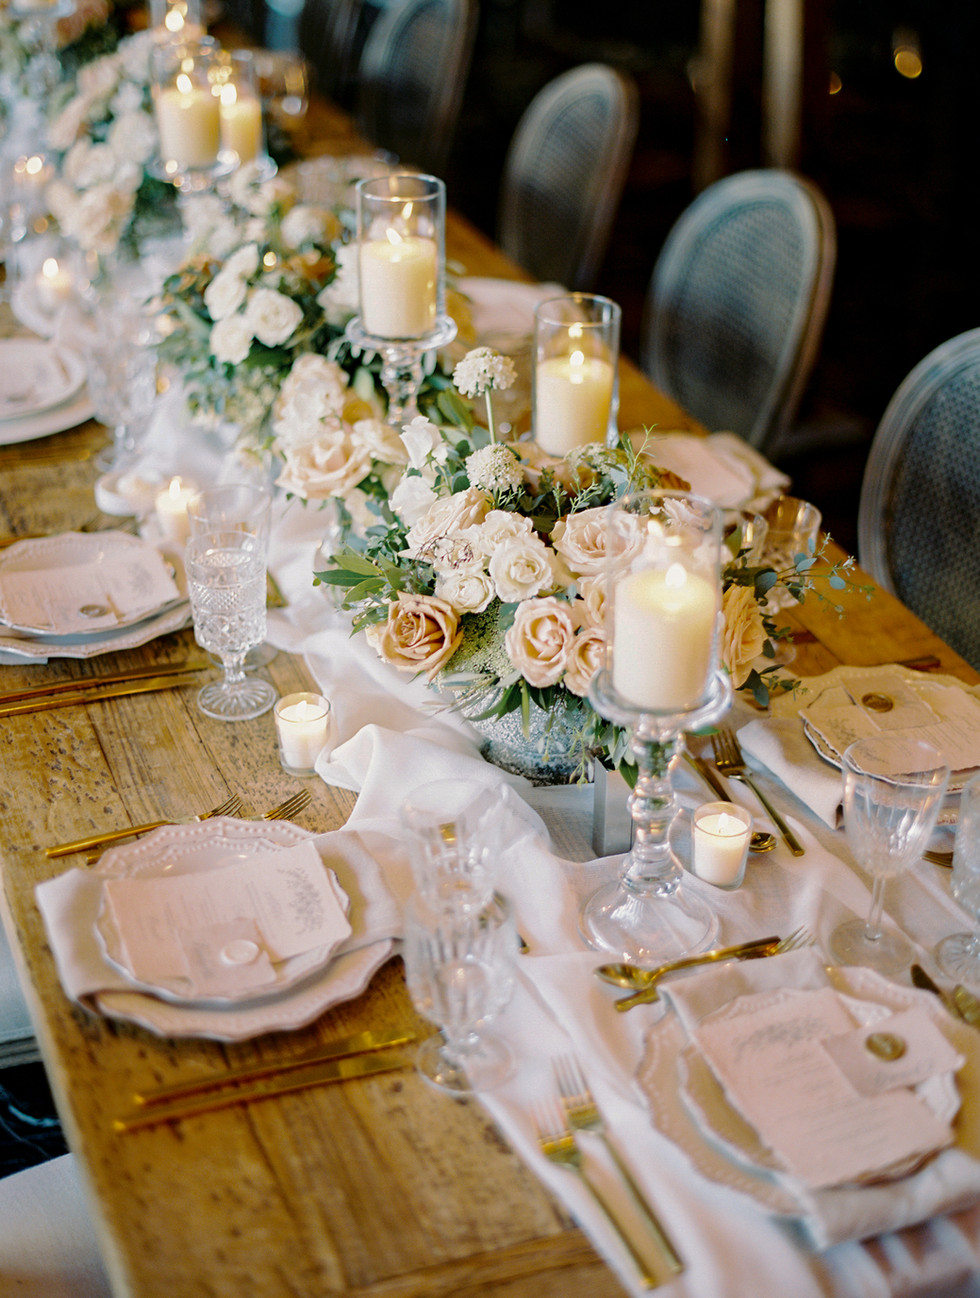 White, cream, and nude wedding reception. Photo: Gaby Jeter